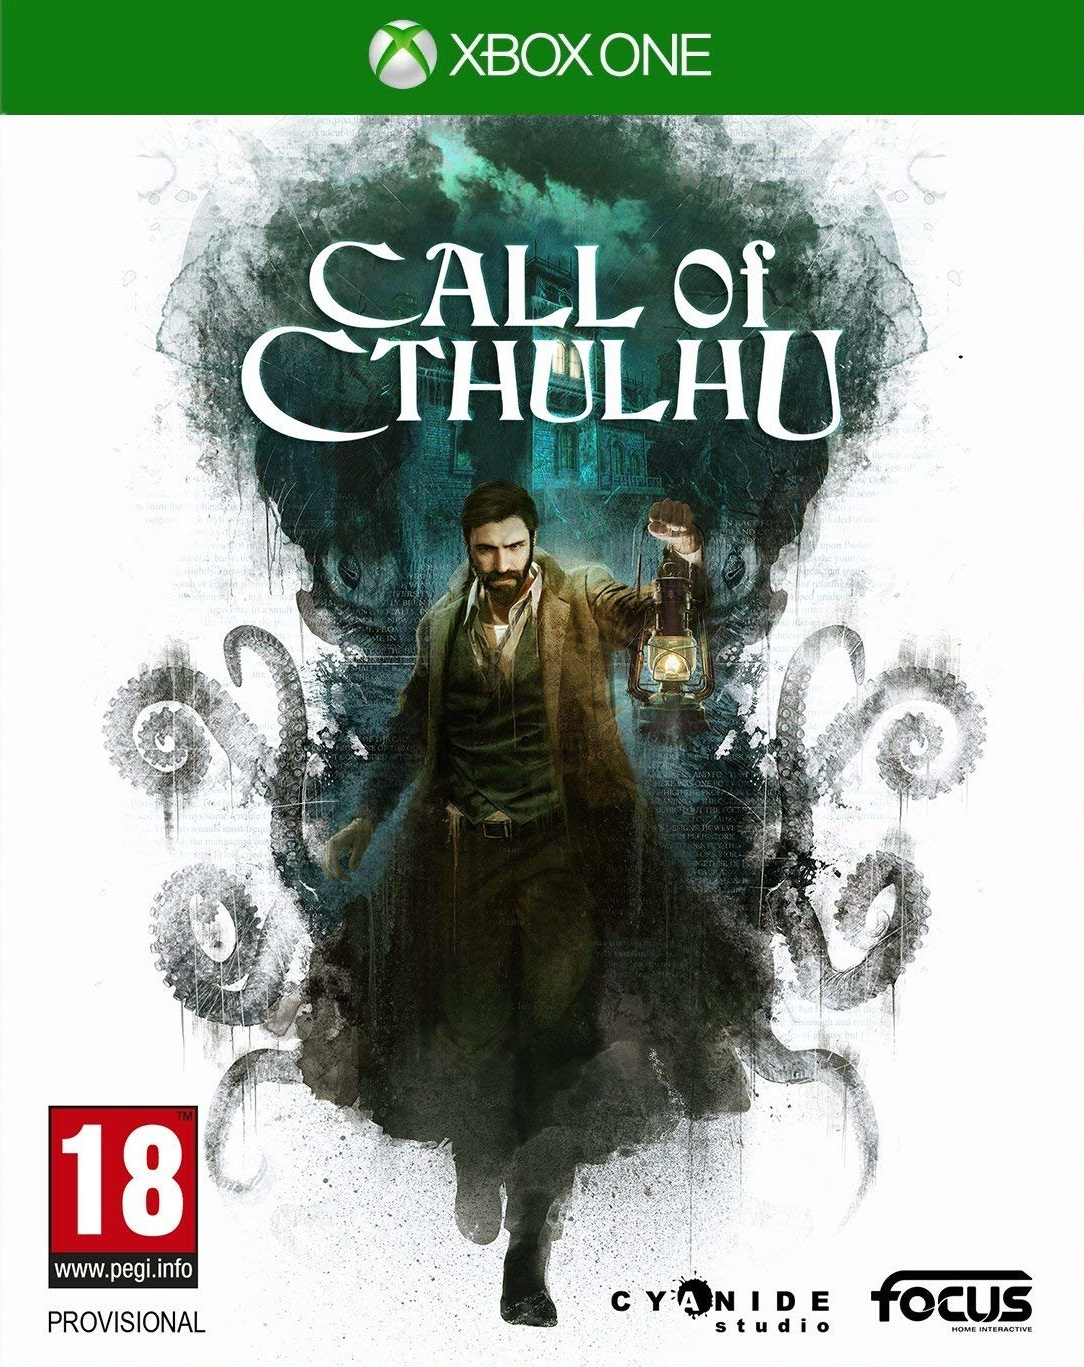 Call of Cthulhu - Xbox One Játékok